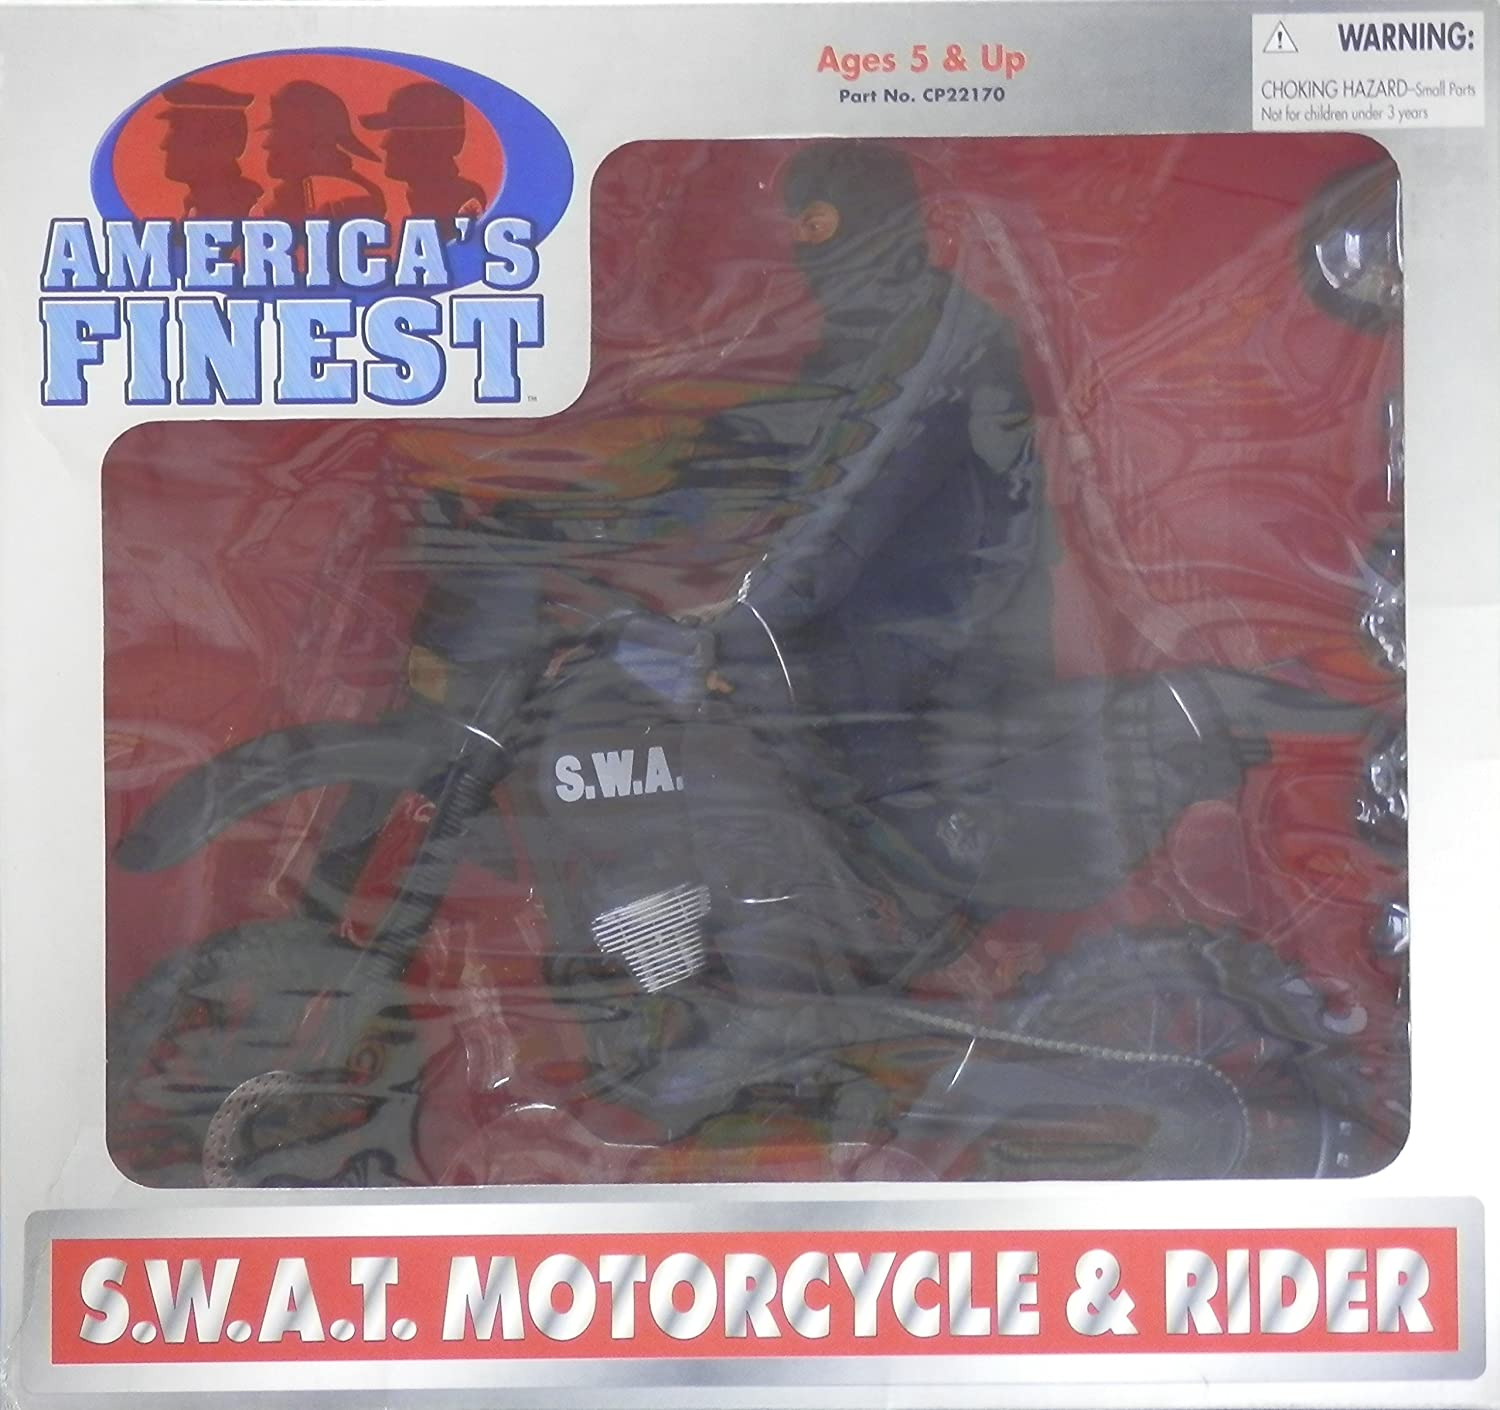 21st Century Toys America's Finest SWAT Motorcycle & Rider 12 inches B01N4R6L6M